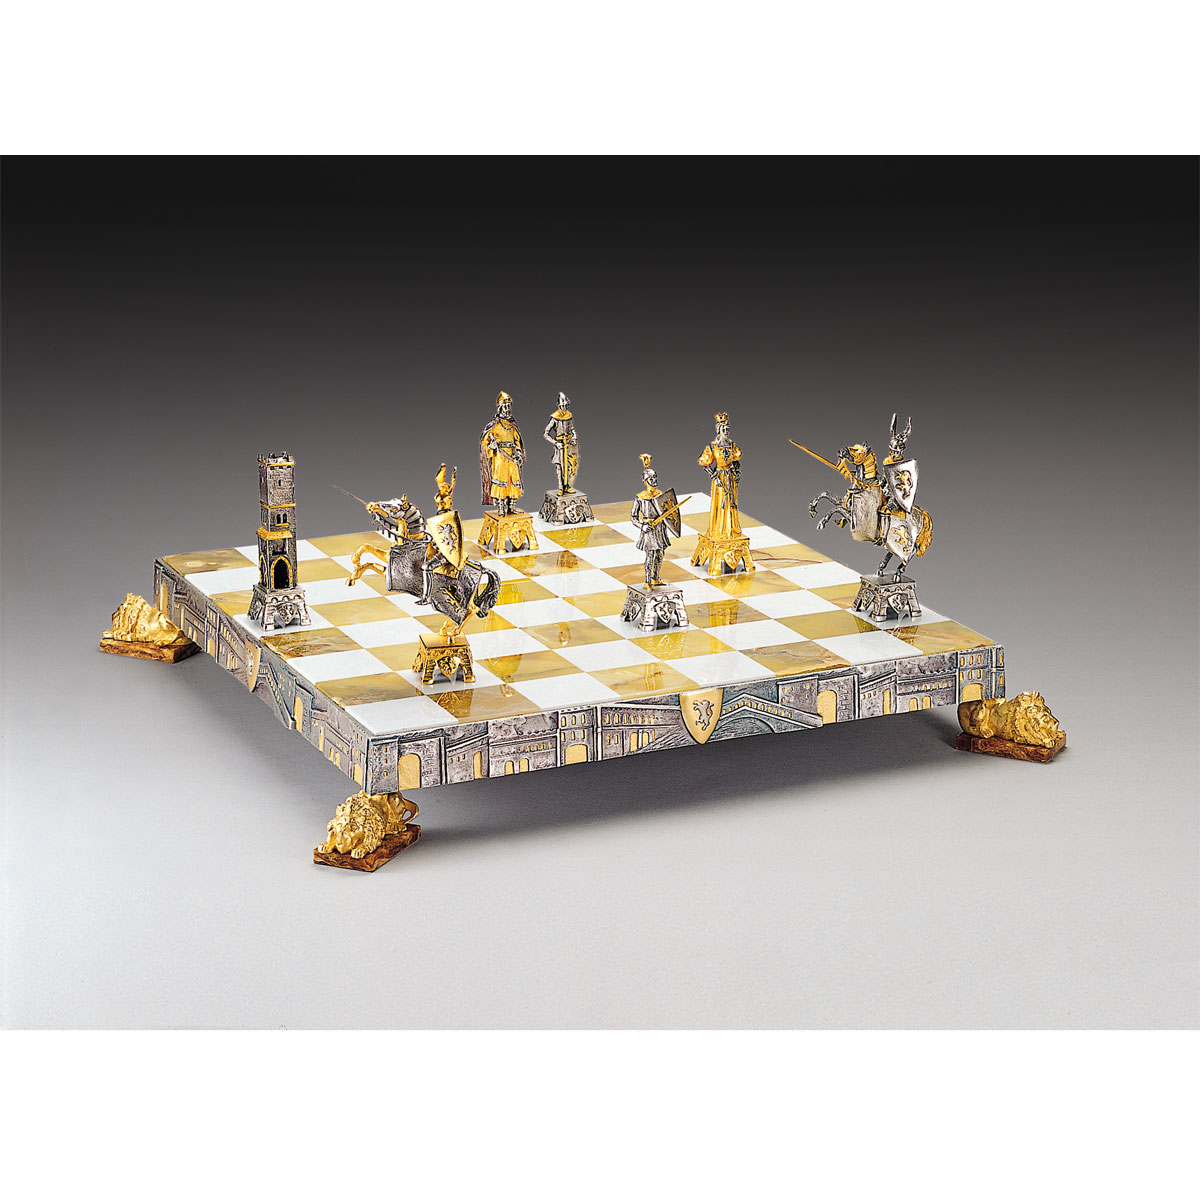 Veneziani Medioevali Gold and Silver Chess Set